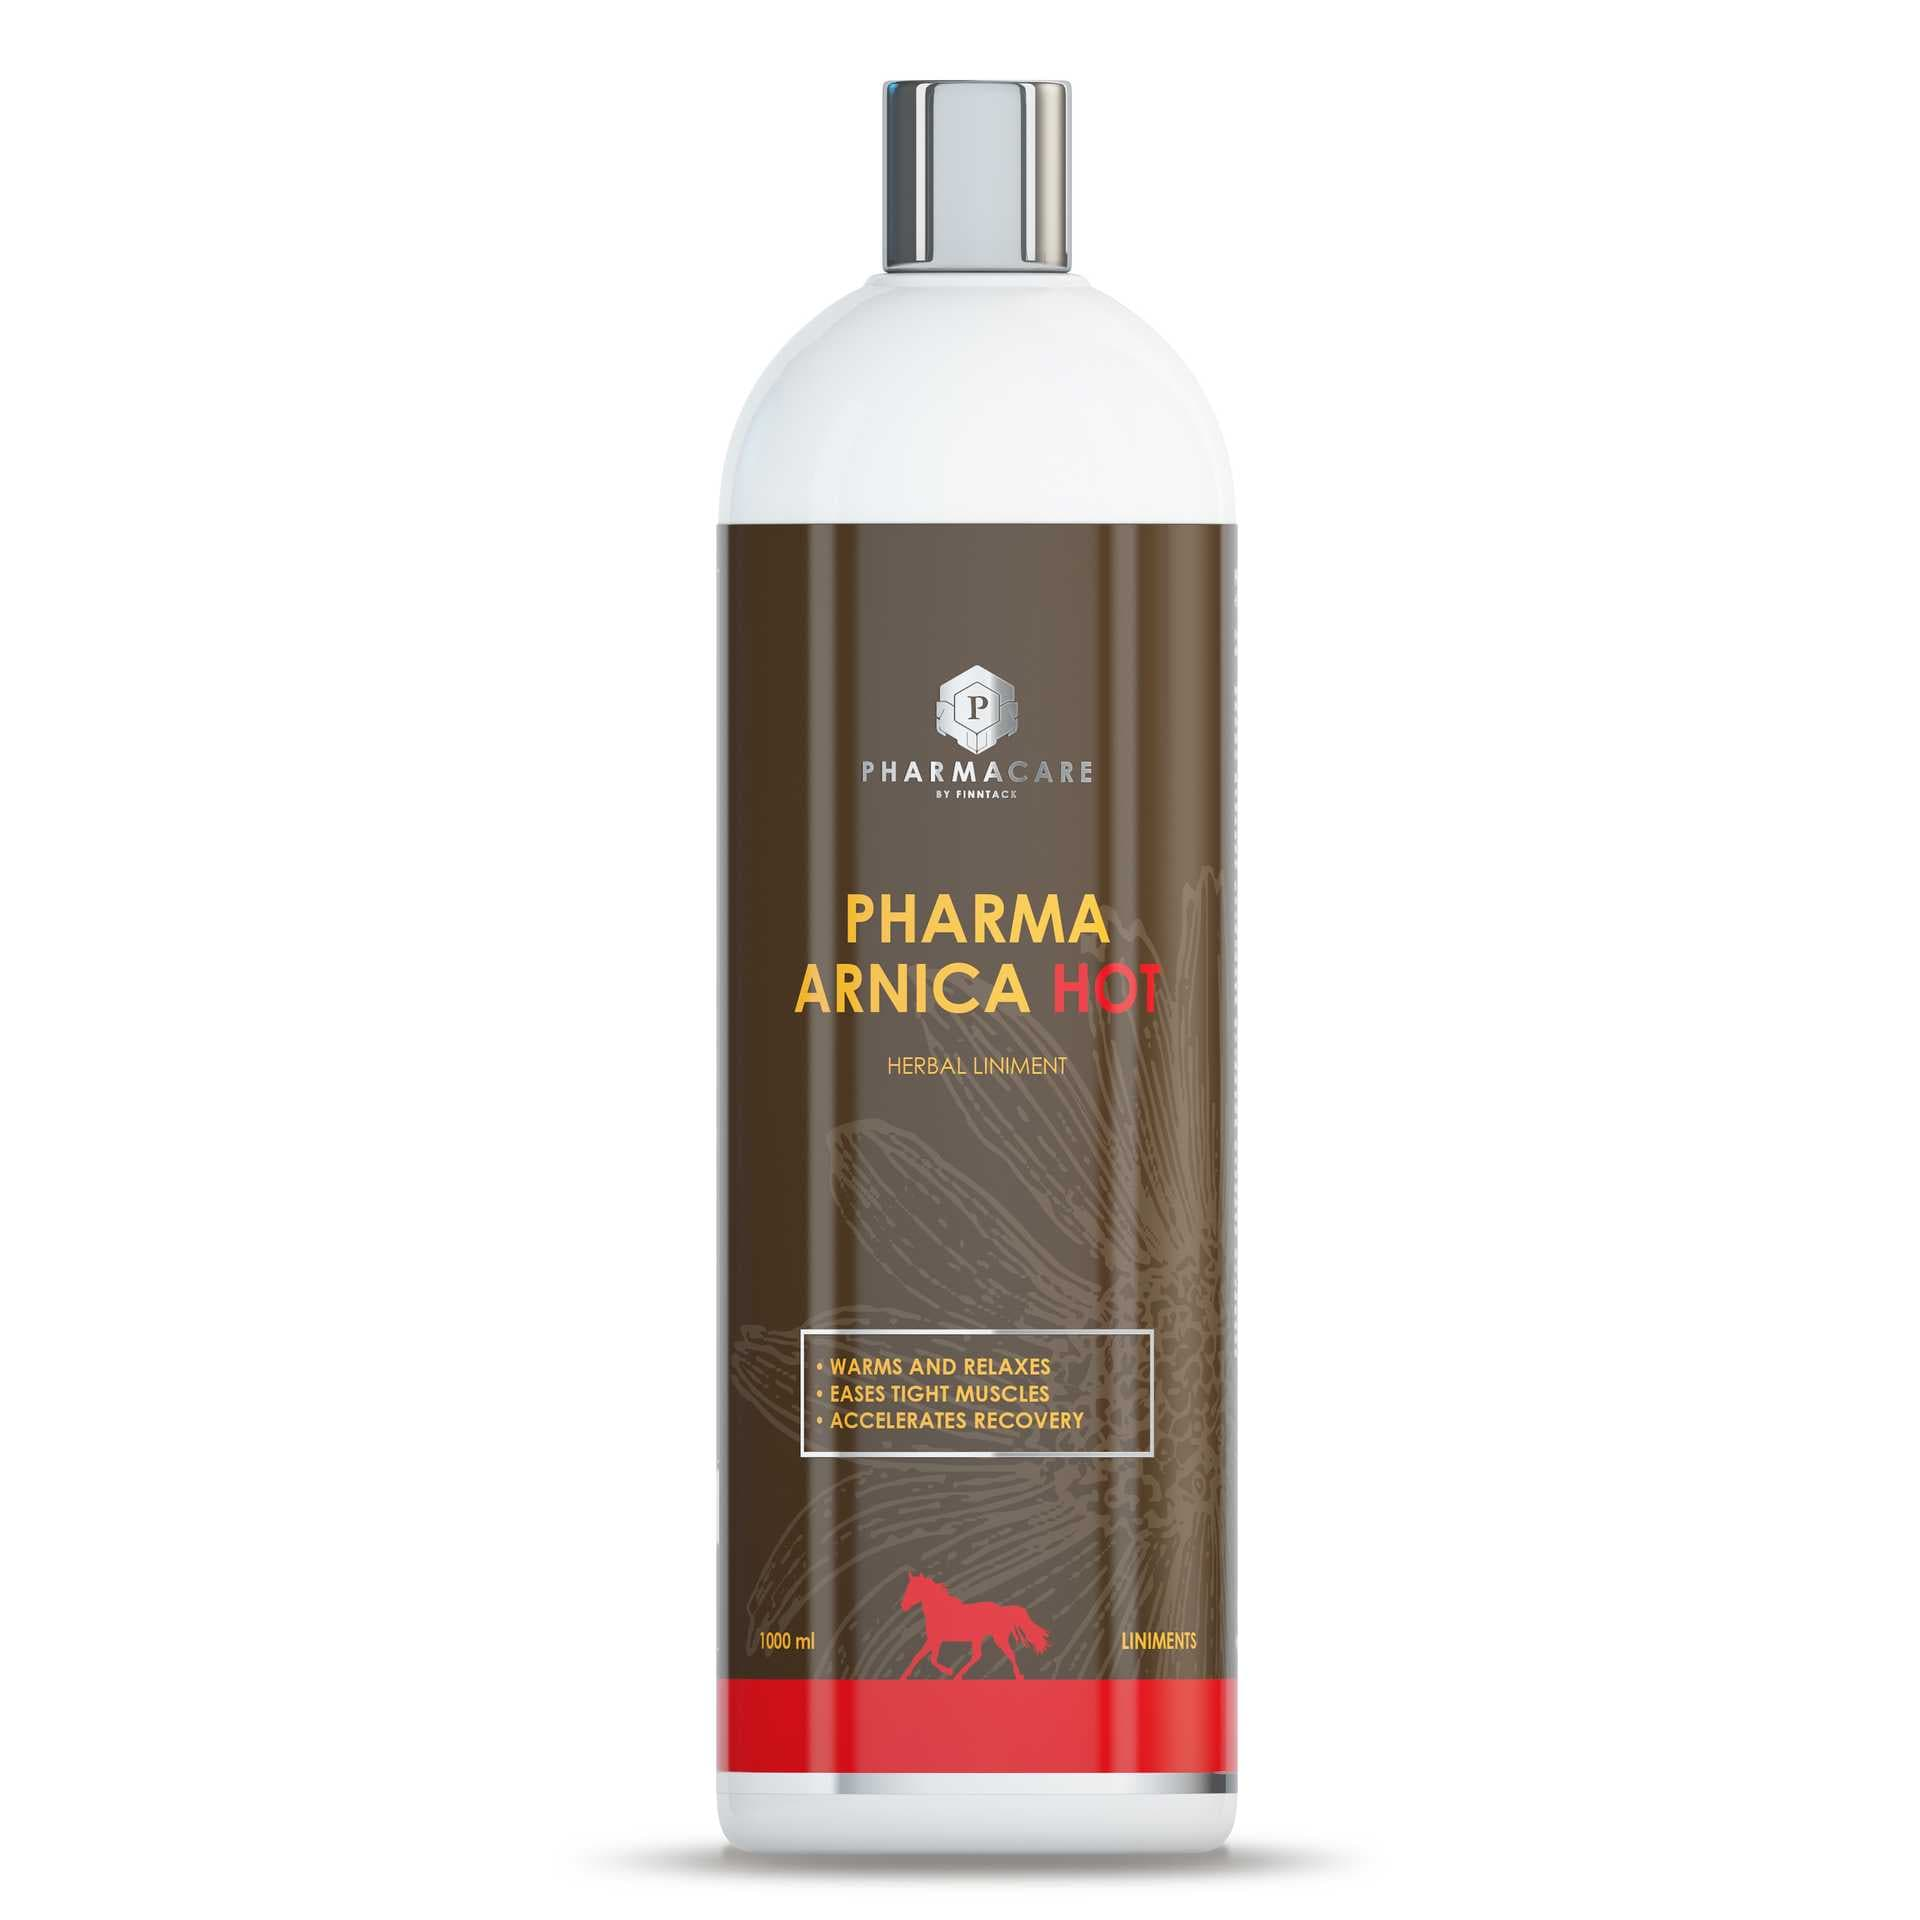 Pharma Arnica Hot linimentti, 1000 ml